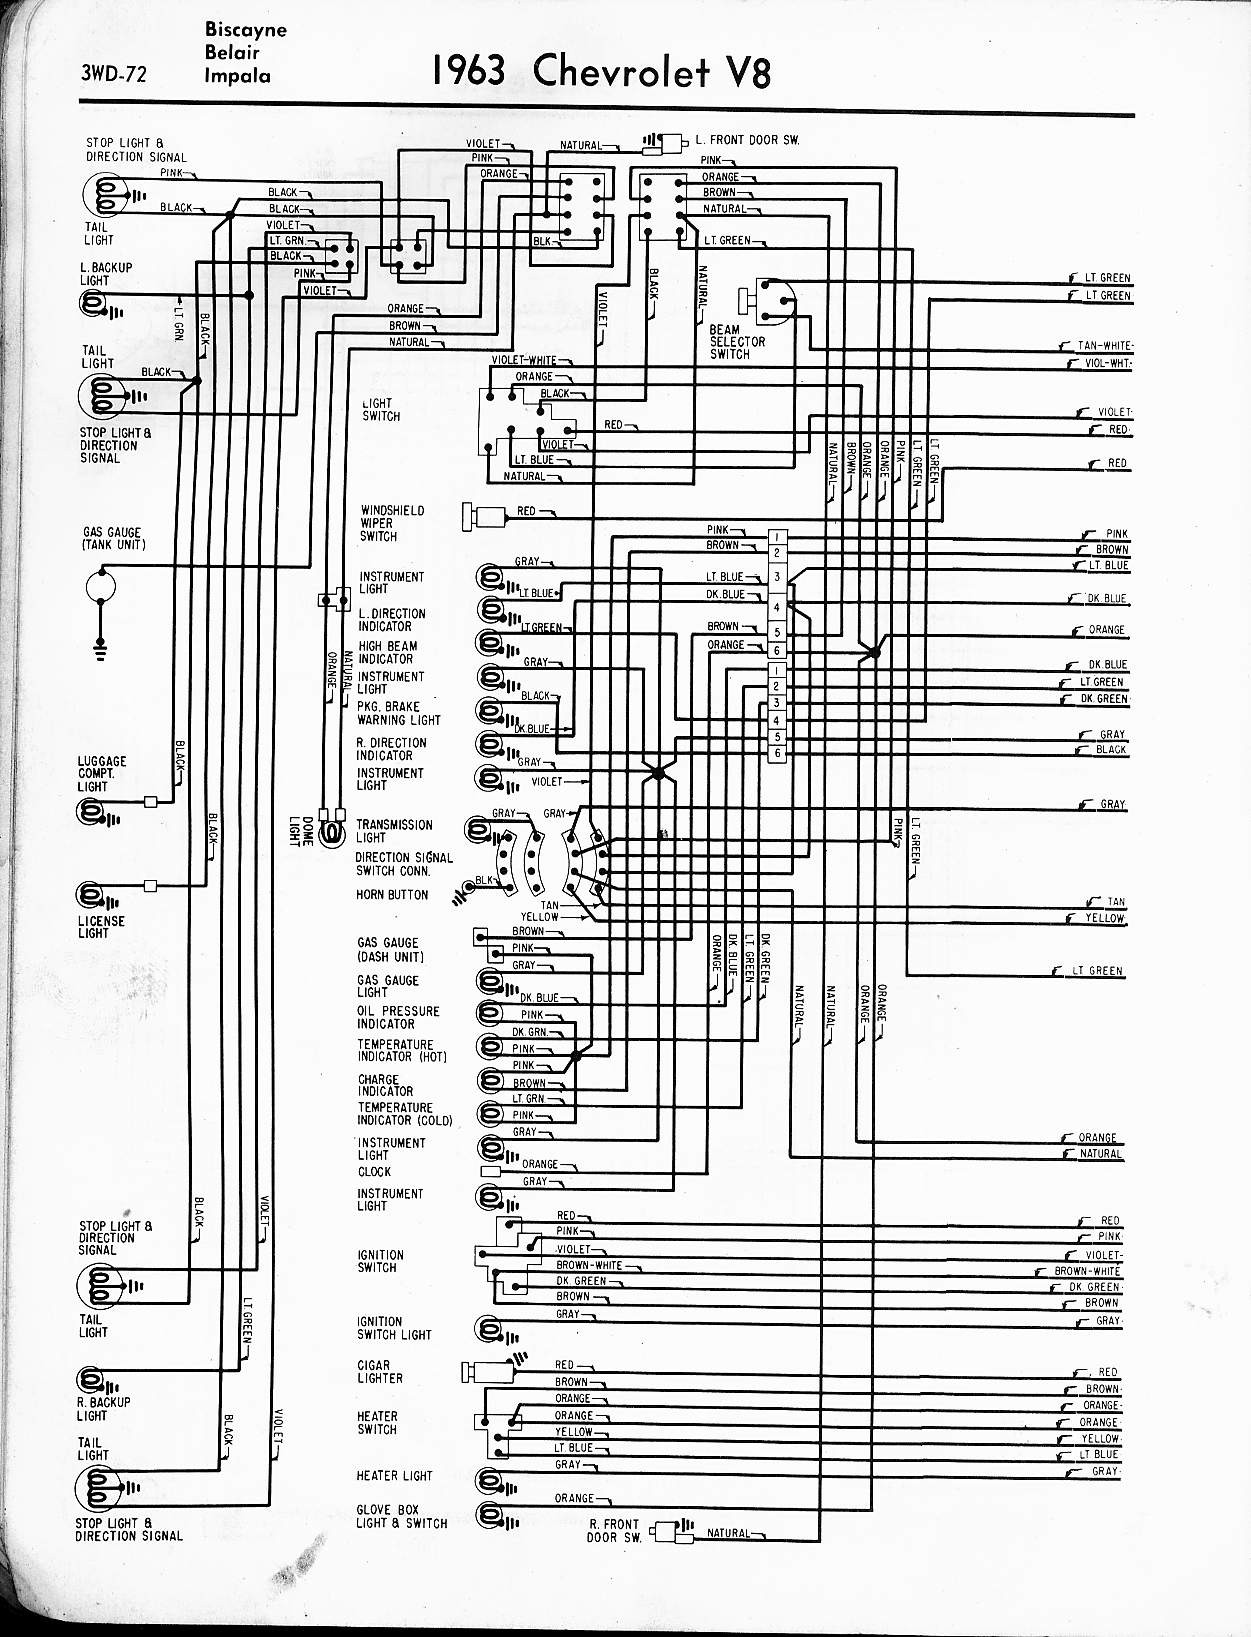 2004 Chevy Impala Engine Diagram Chevrolet Chevy Sedan 1964 Chevy Impala Ss Wiring Harness Diagram Of 2004 Chevy Impala Engine Diagram